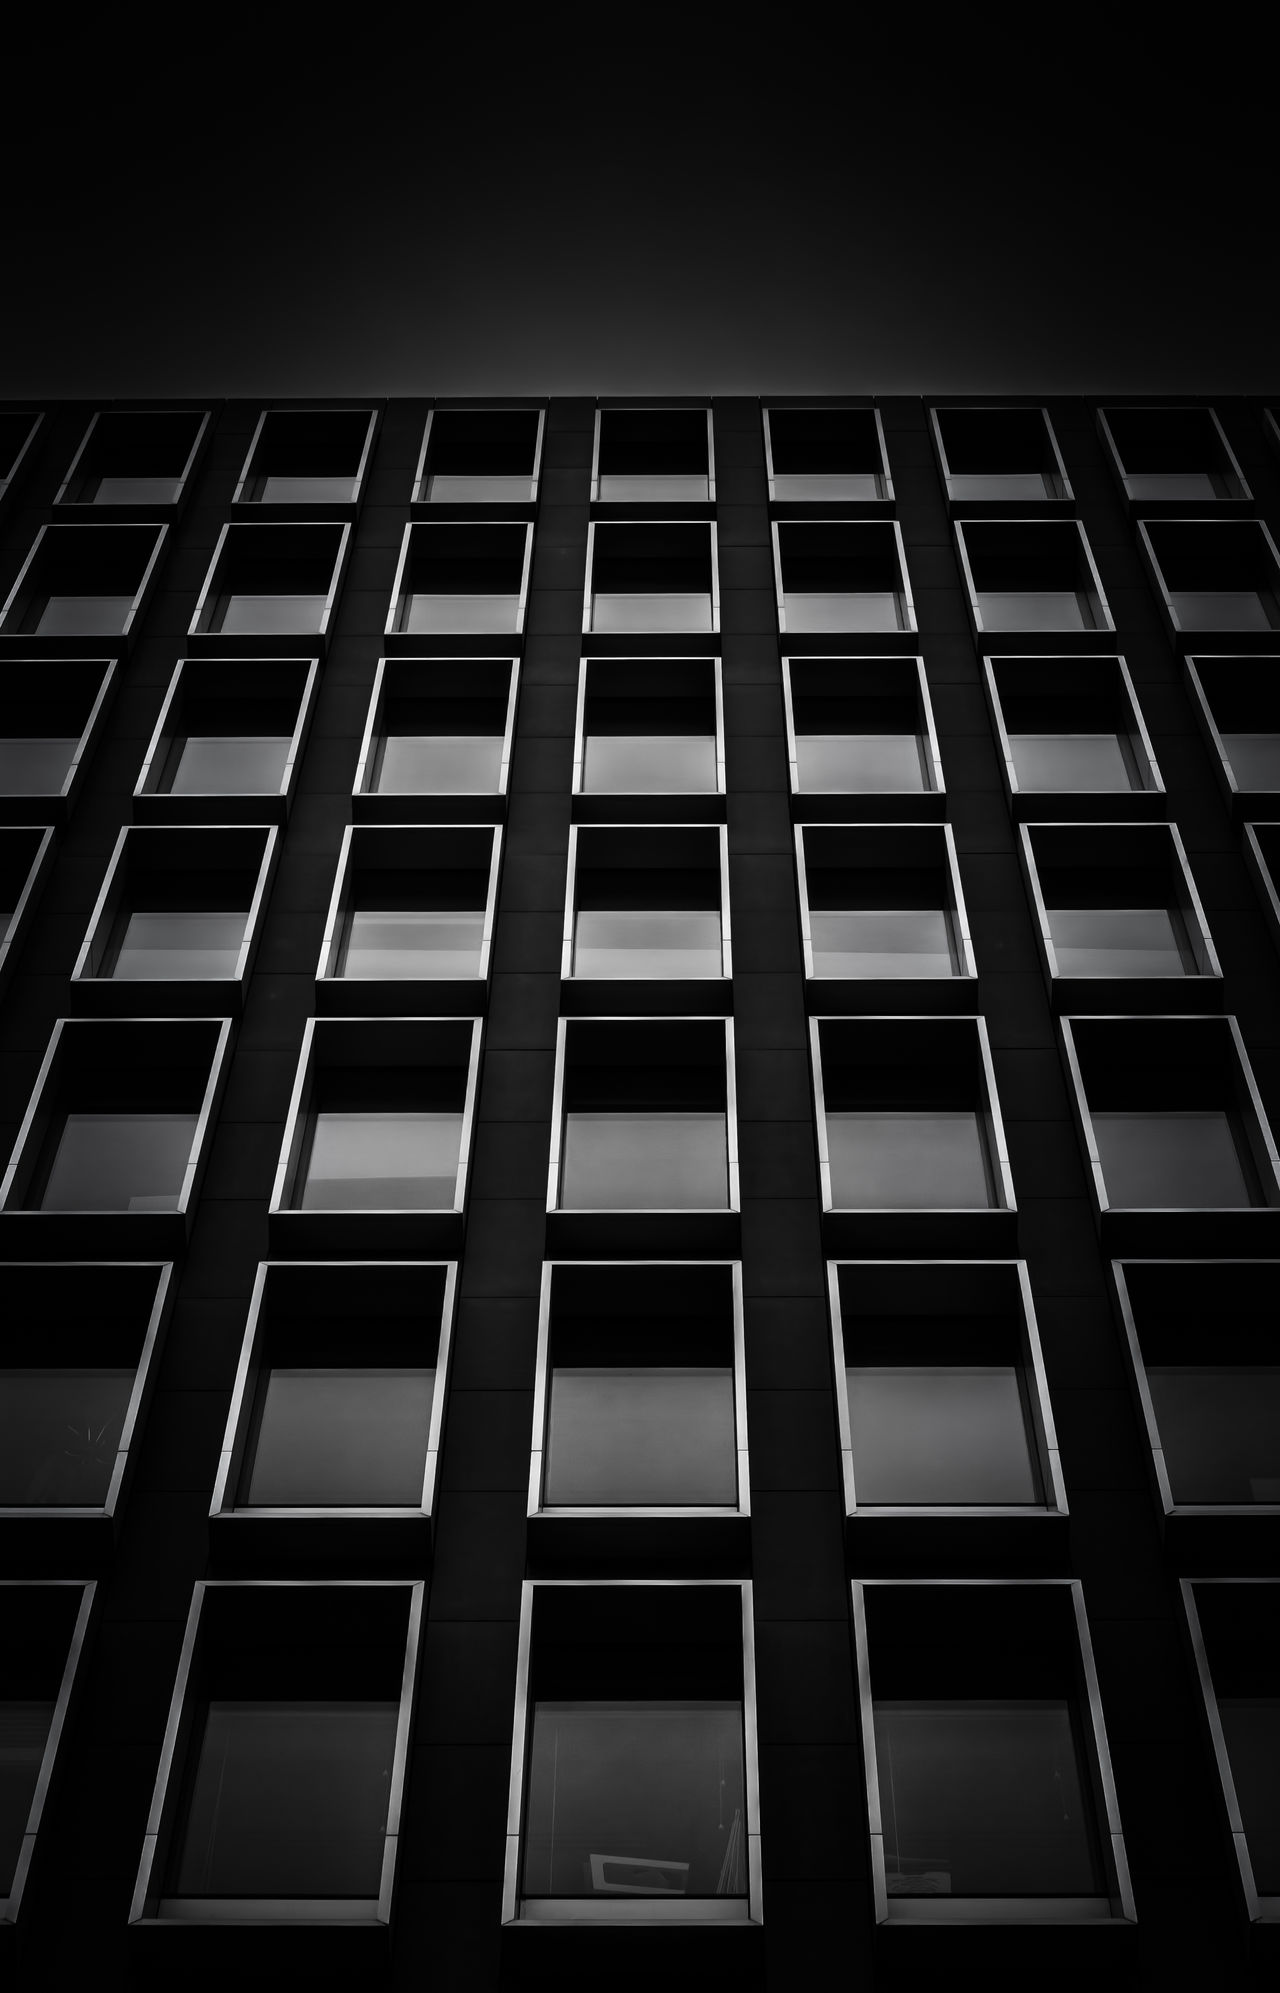 No People Architectural Architecture Symmetry Symmetrical Contrast Black & White Bnw Light And Shadow Monochromatic Shadows & Lights London Lights And Shadows Blackandwhite Photography Office Building Pattern Lookingup Looking Up Parallel Lines Windows Window Fine Art Photography Low Angle View Built Structure